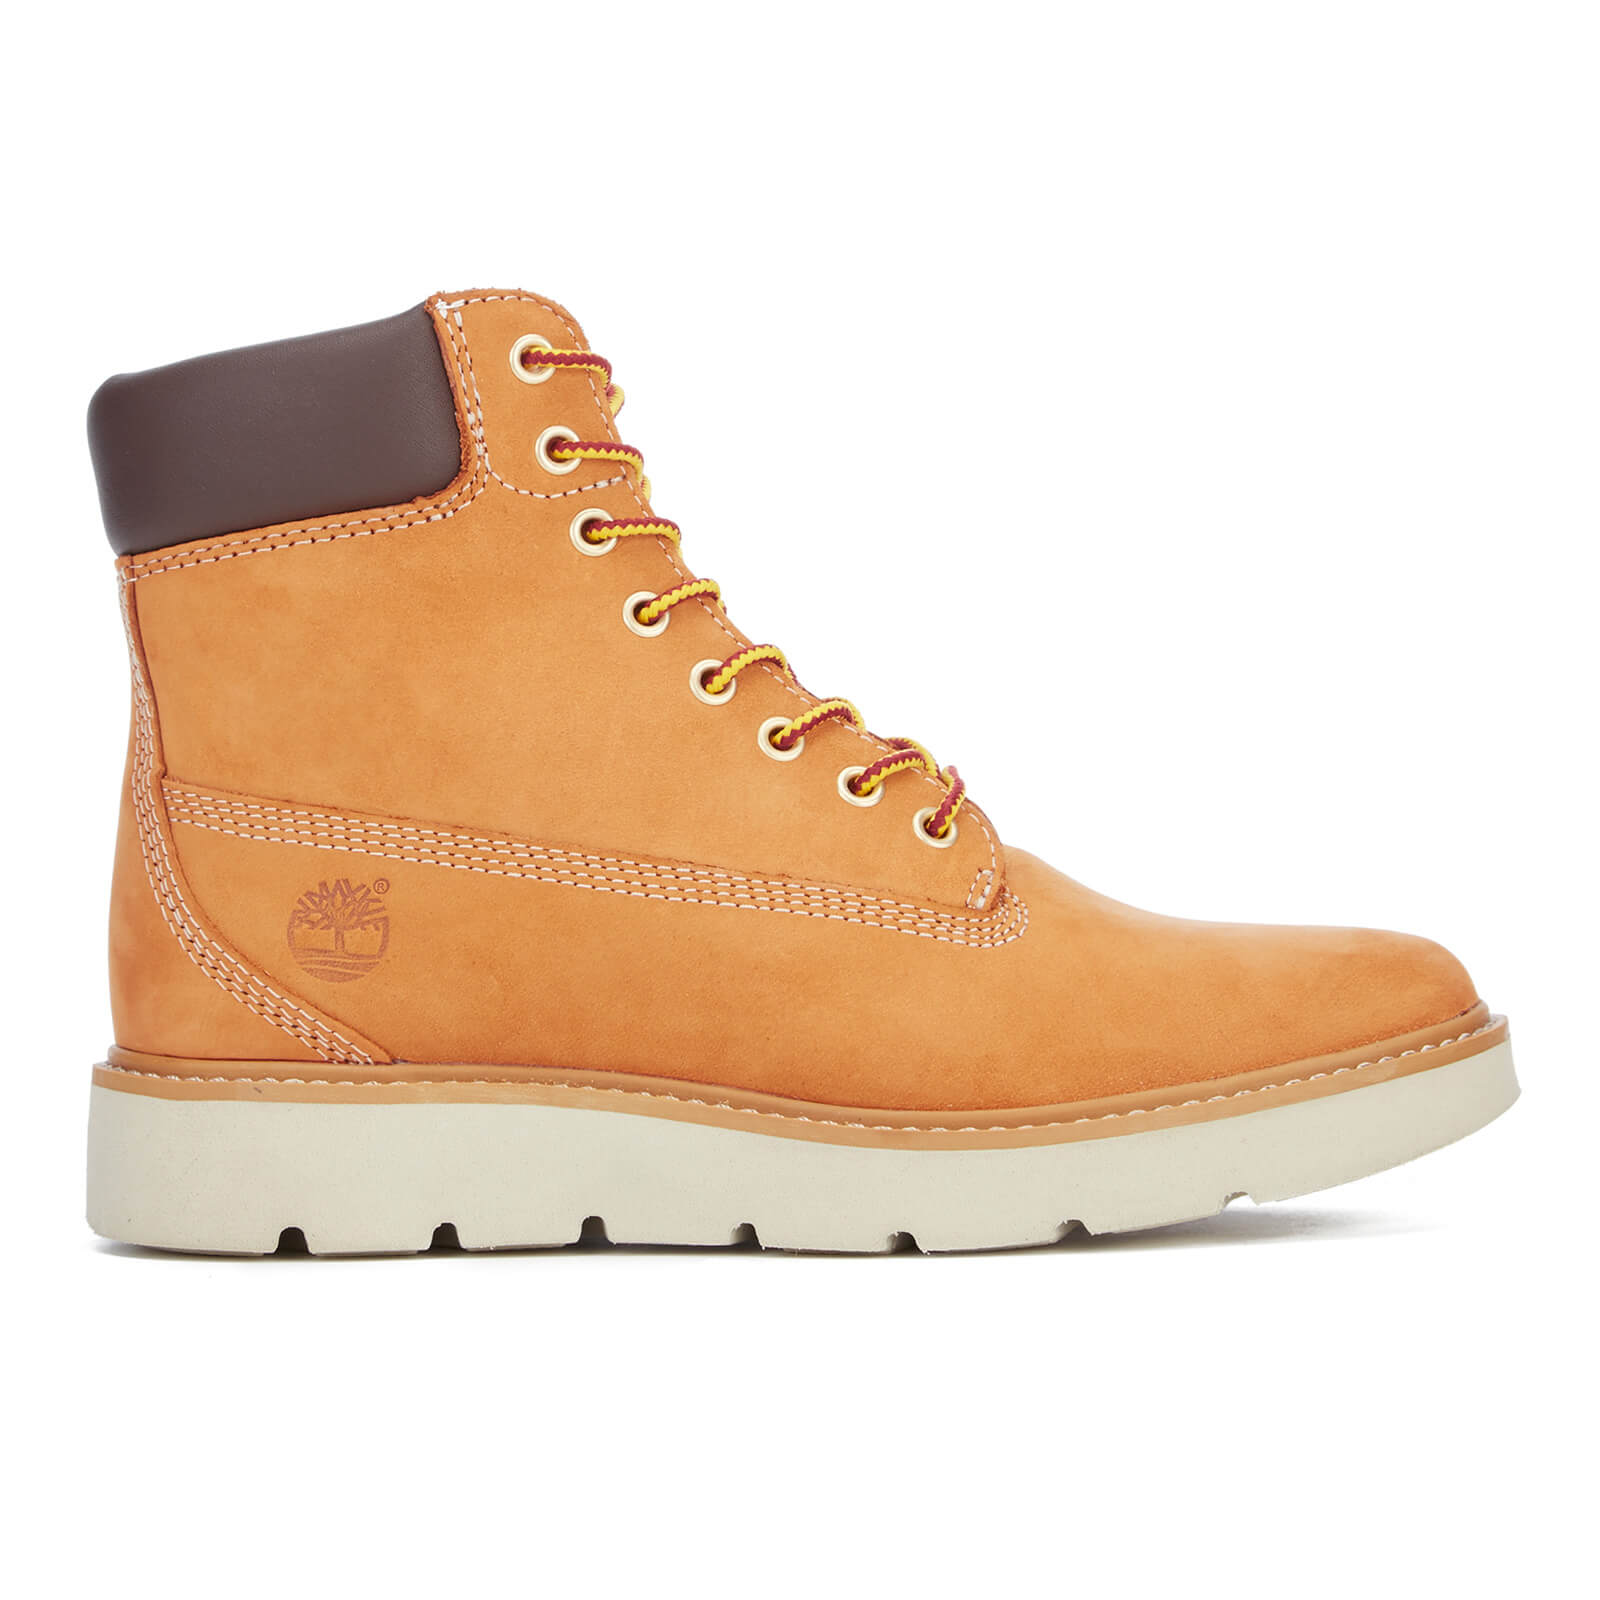 1c3d80365089a Timberland Women's Kenniston 6 Inch Nubuck Boots - Wheat | FREE UK Delivery  | Allsole